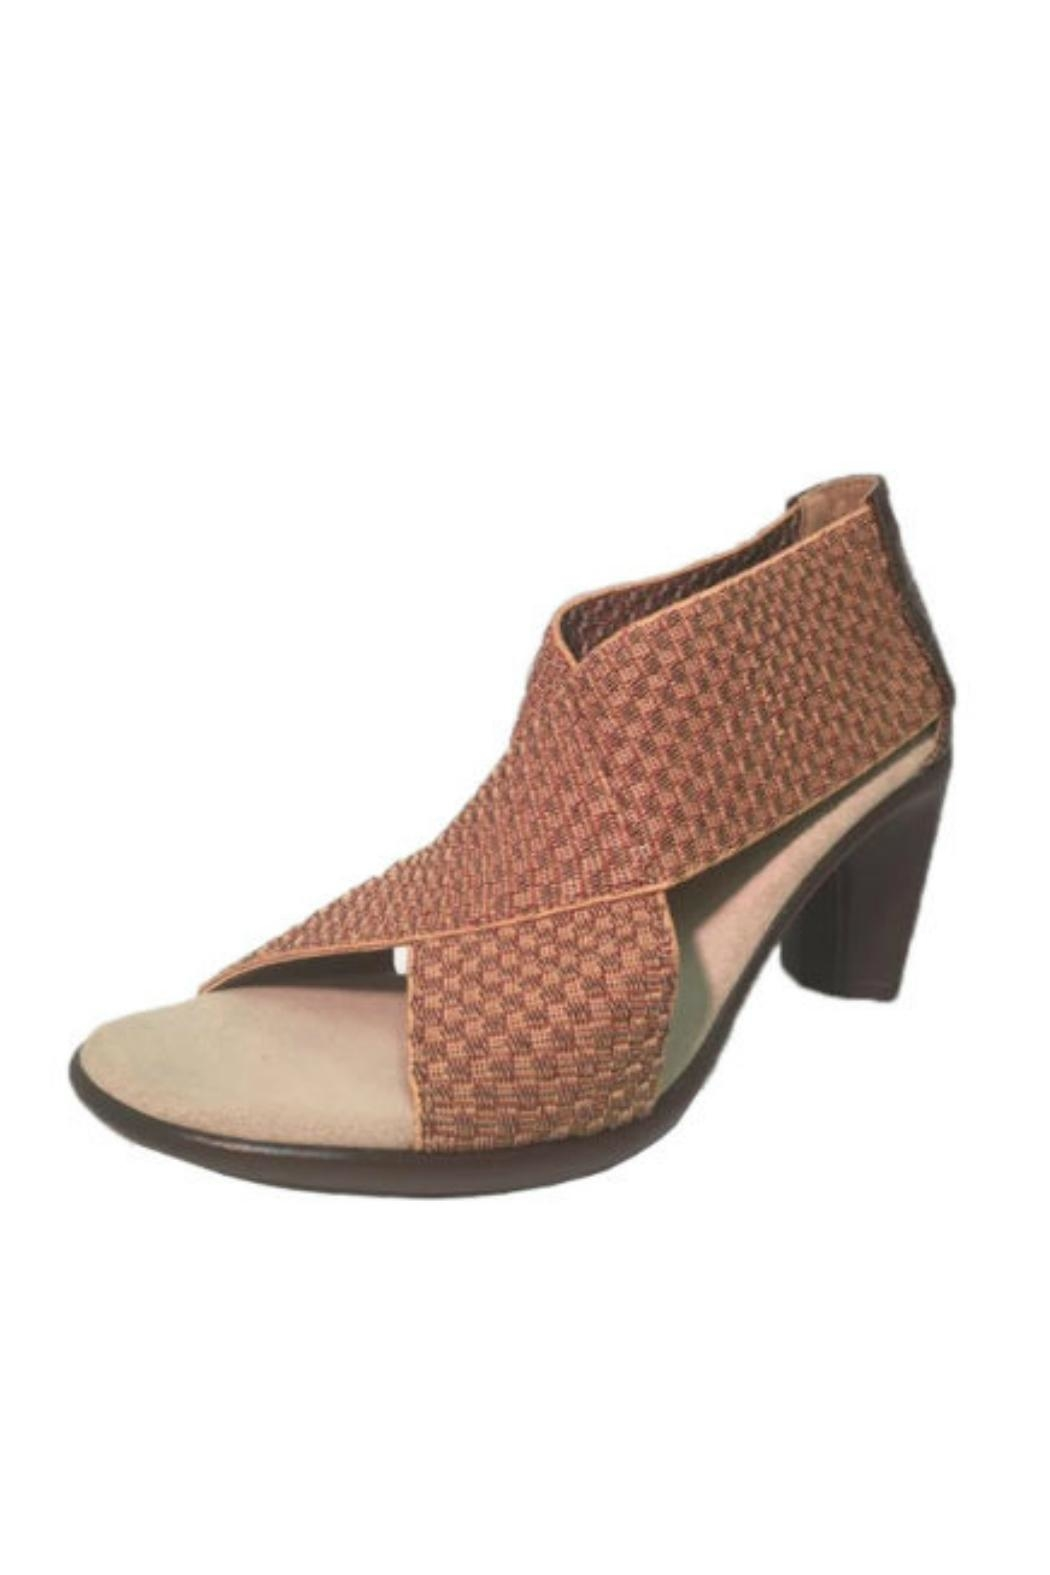 CHARLESTON Crawford Cross Heel - Front Cropped Image